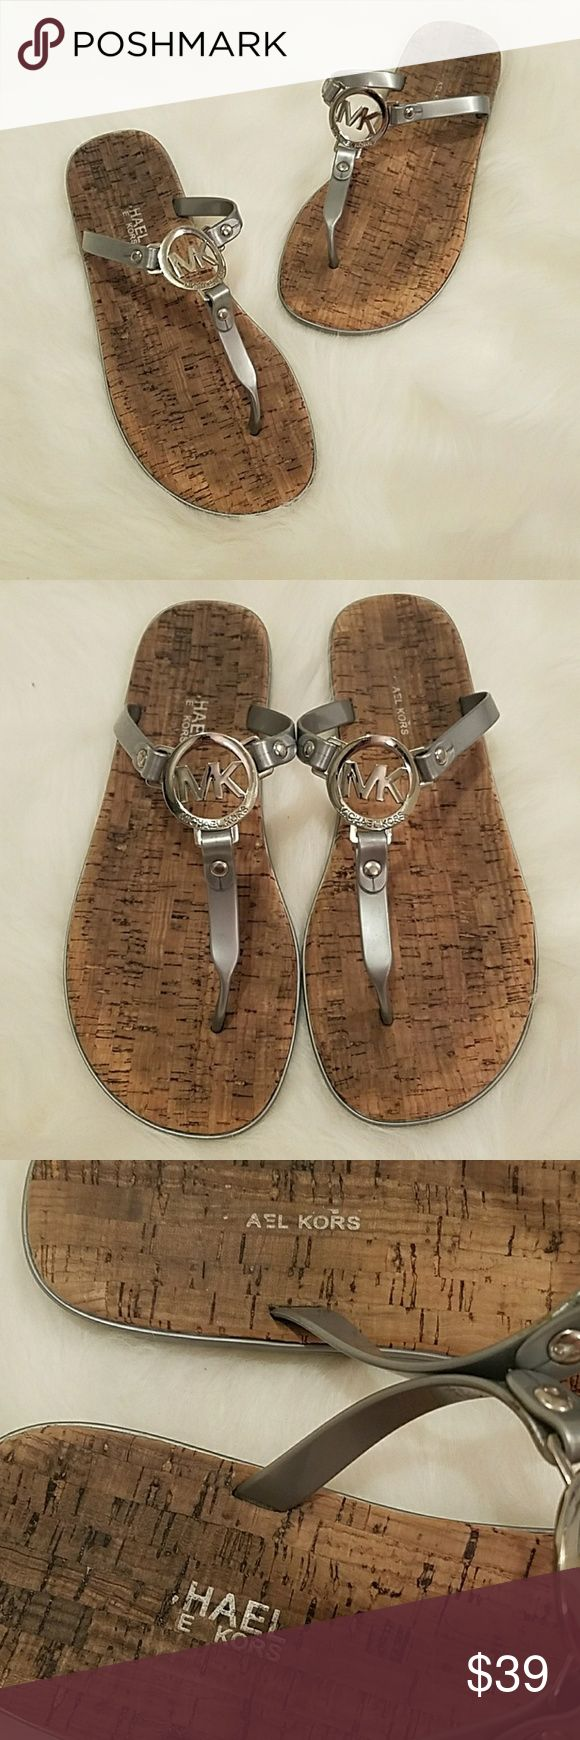 Michael Kors Gray Cork Logo Jelly Thong Sandals Shoes are in excellent gently worn condition. Perfect for running errands on as they are comfortable and easily slip on and off. There is no size label, but they fit a size 9 Michael Kors Shoes Sandals